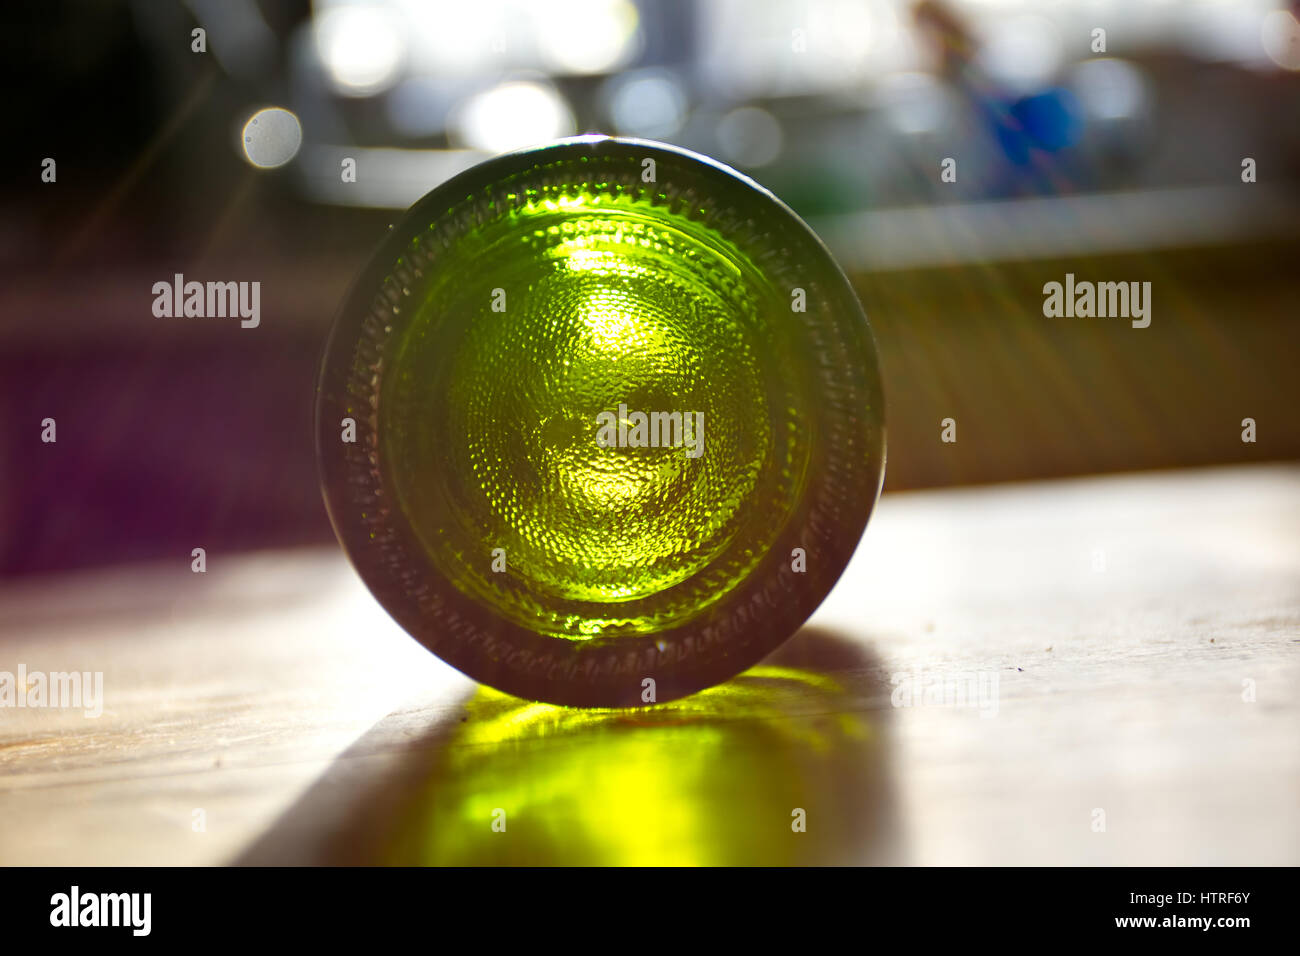 The morning after,empty bottle of wine rolling on table after party. - Stock Image